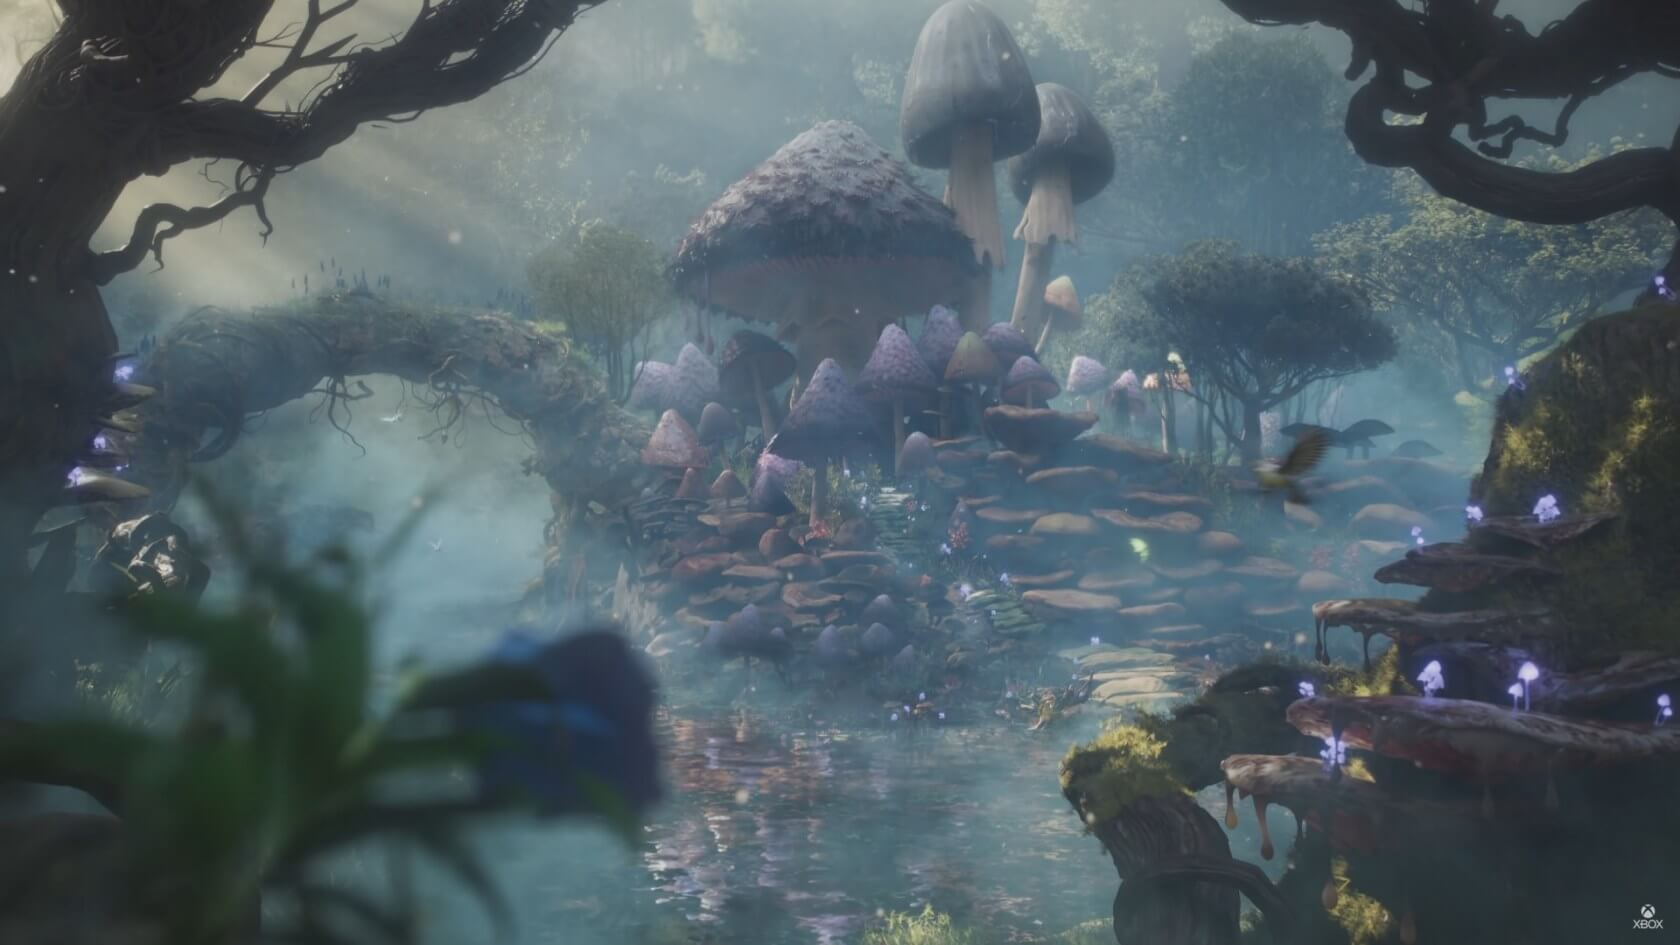 Microsoft reveals a 'new beginning' for the Fable franchise - TechSpot